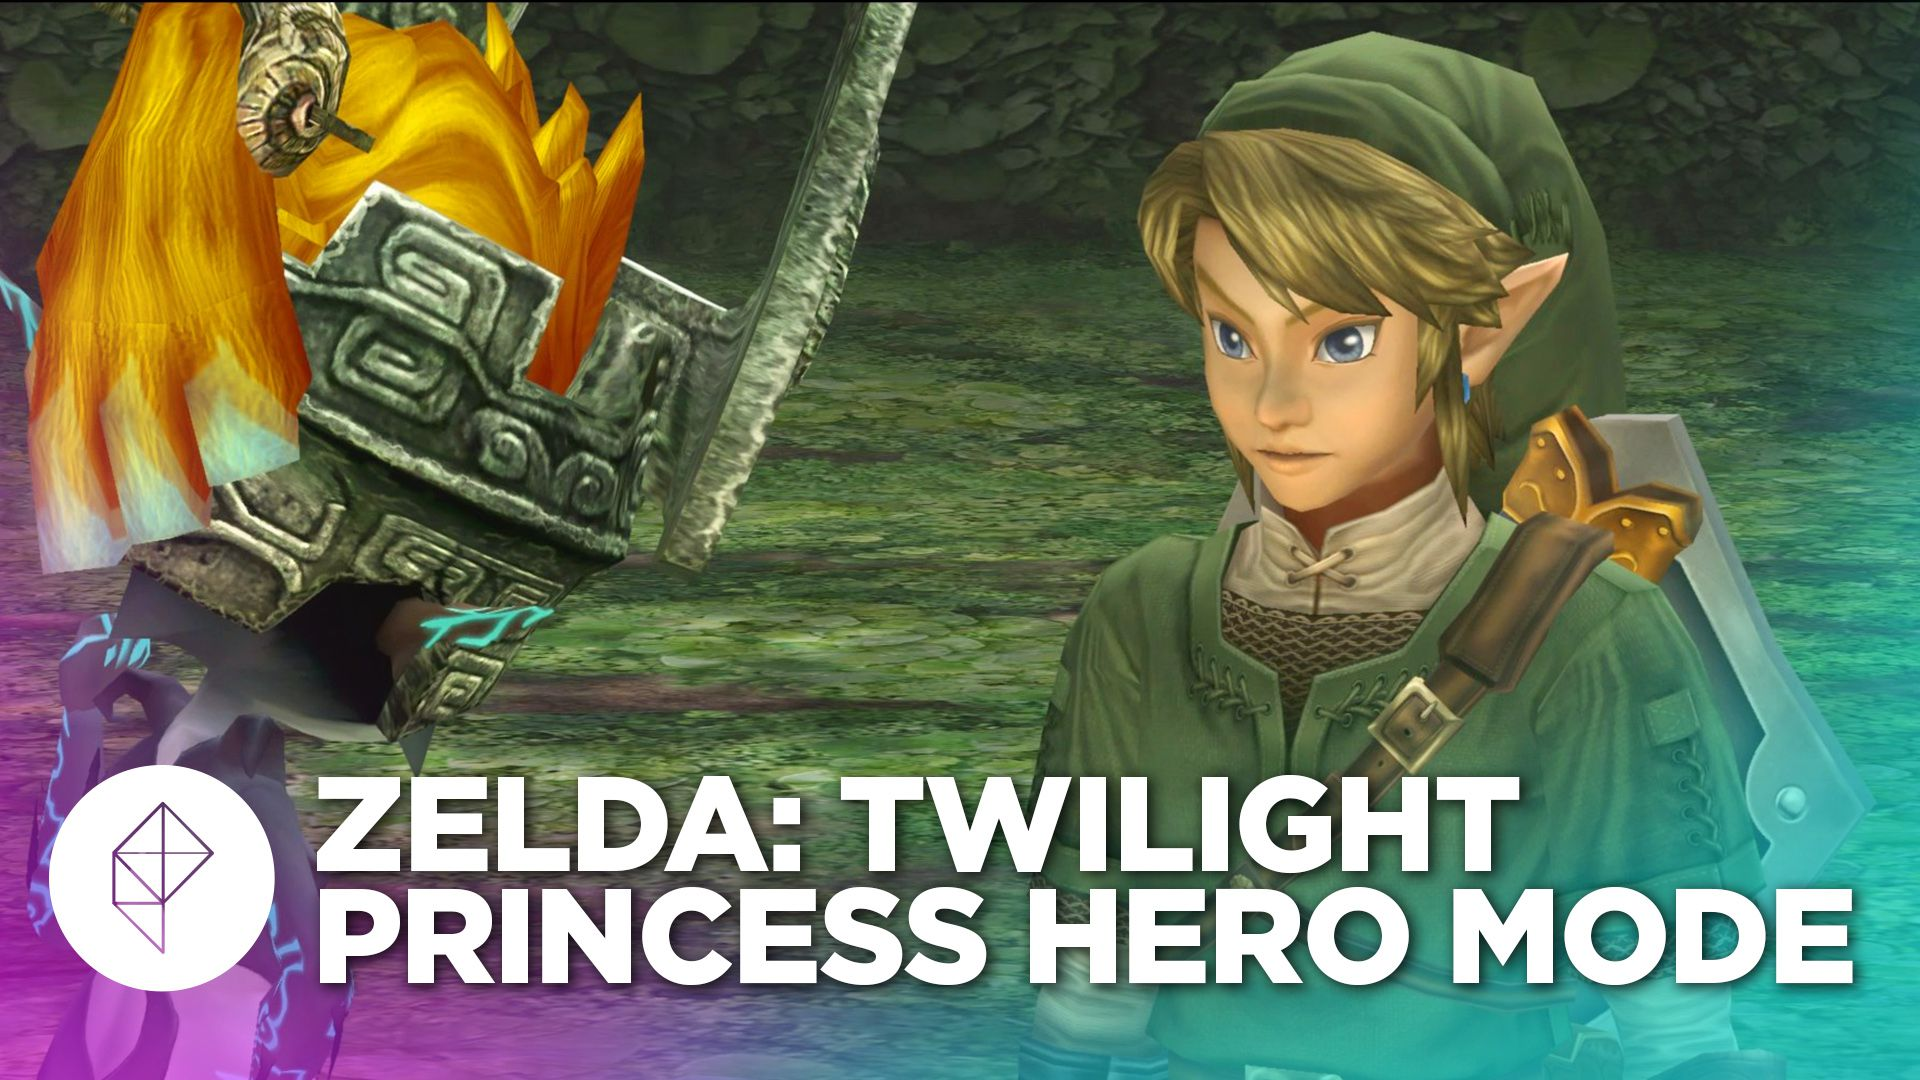 Zelda: Twilight Princess HD's new Hero Mode is the absolute best way to play